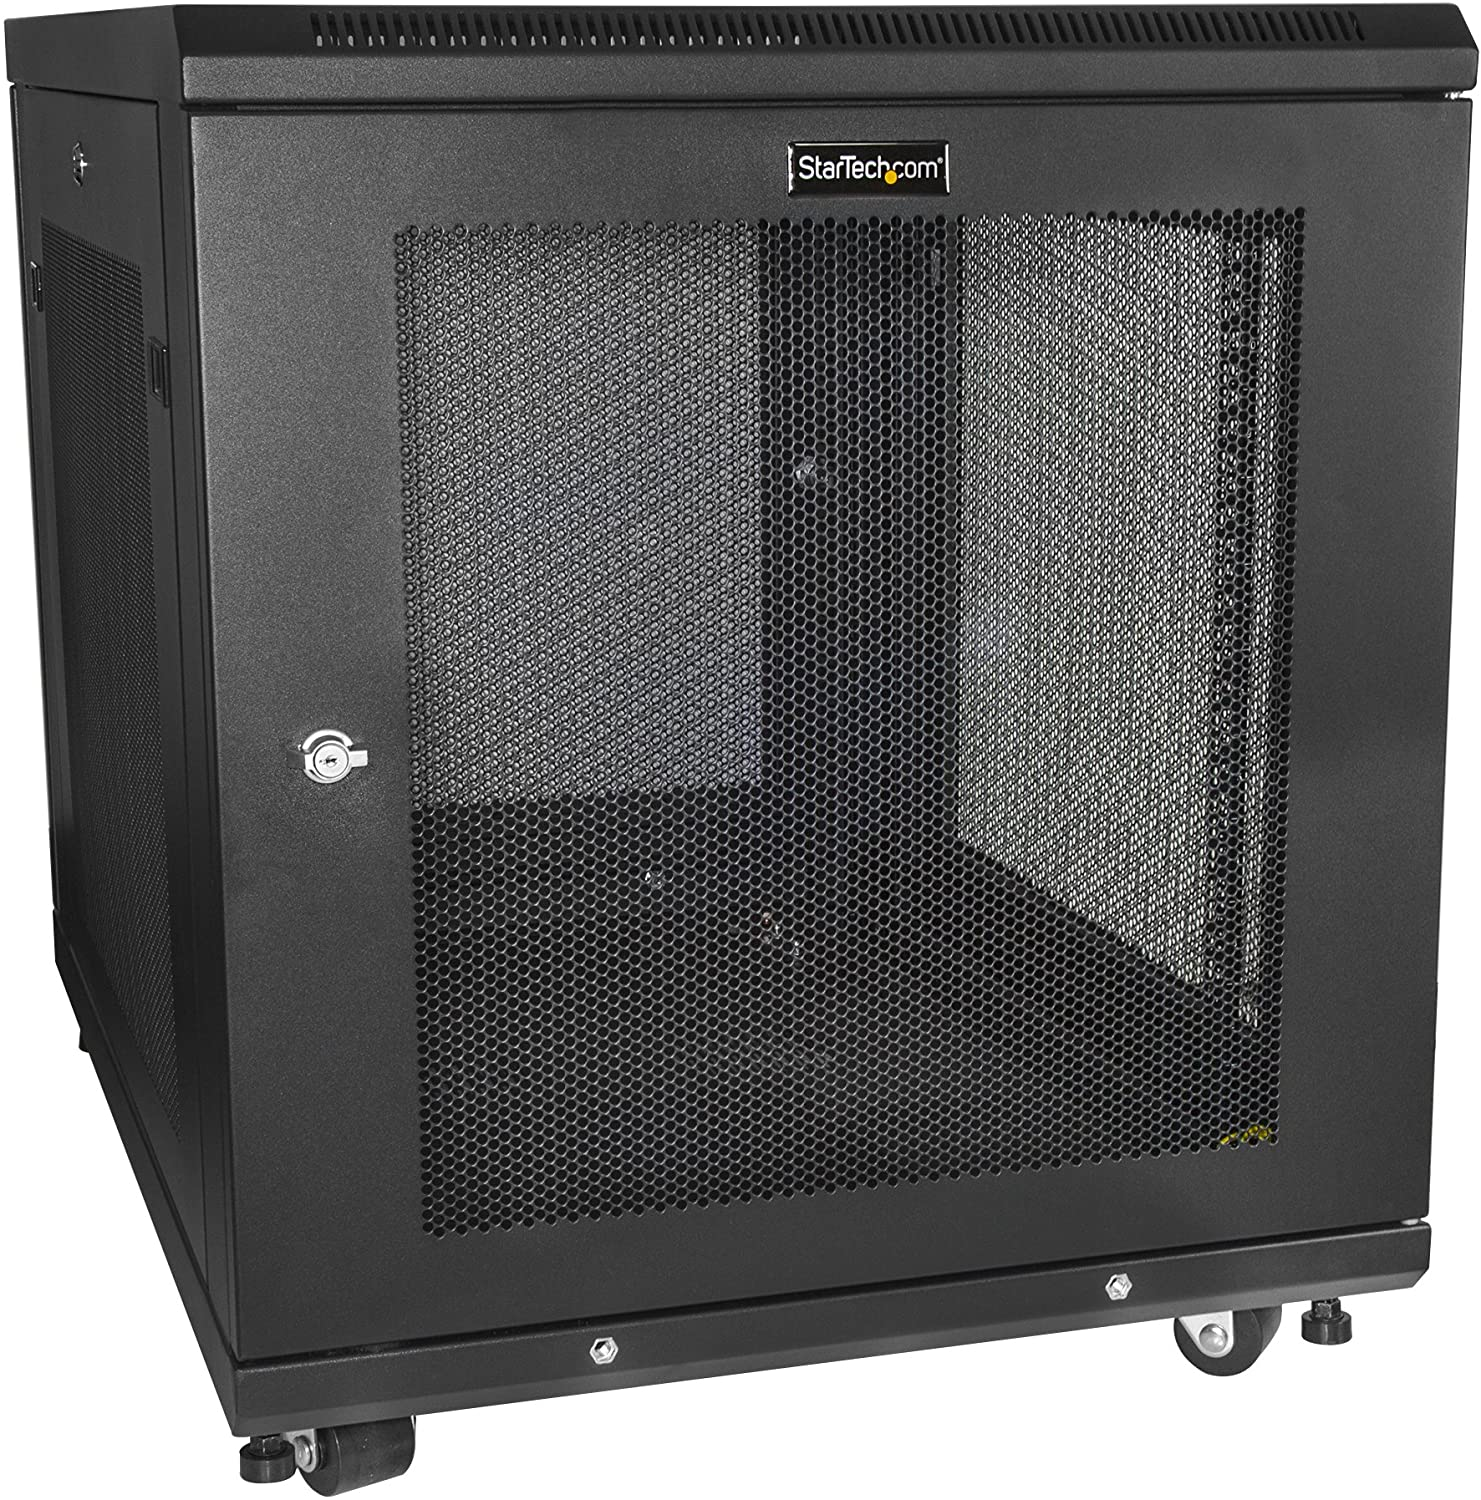 "StarTech.com 12U Server Rack Cabinet - 4-Post Adjustable Depth (2"" to 30"") Network Equipment Rack Enclosure w/Casters/Cable Management/Shelf/Locking Dell PowerEdge HP ProLiant ThinkServer (RK1233BKM)"